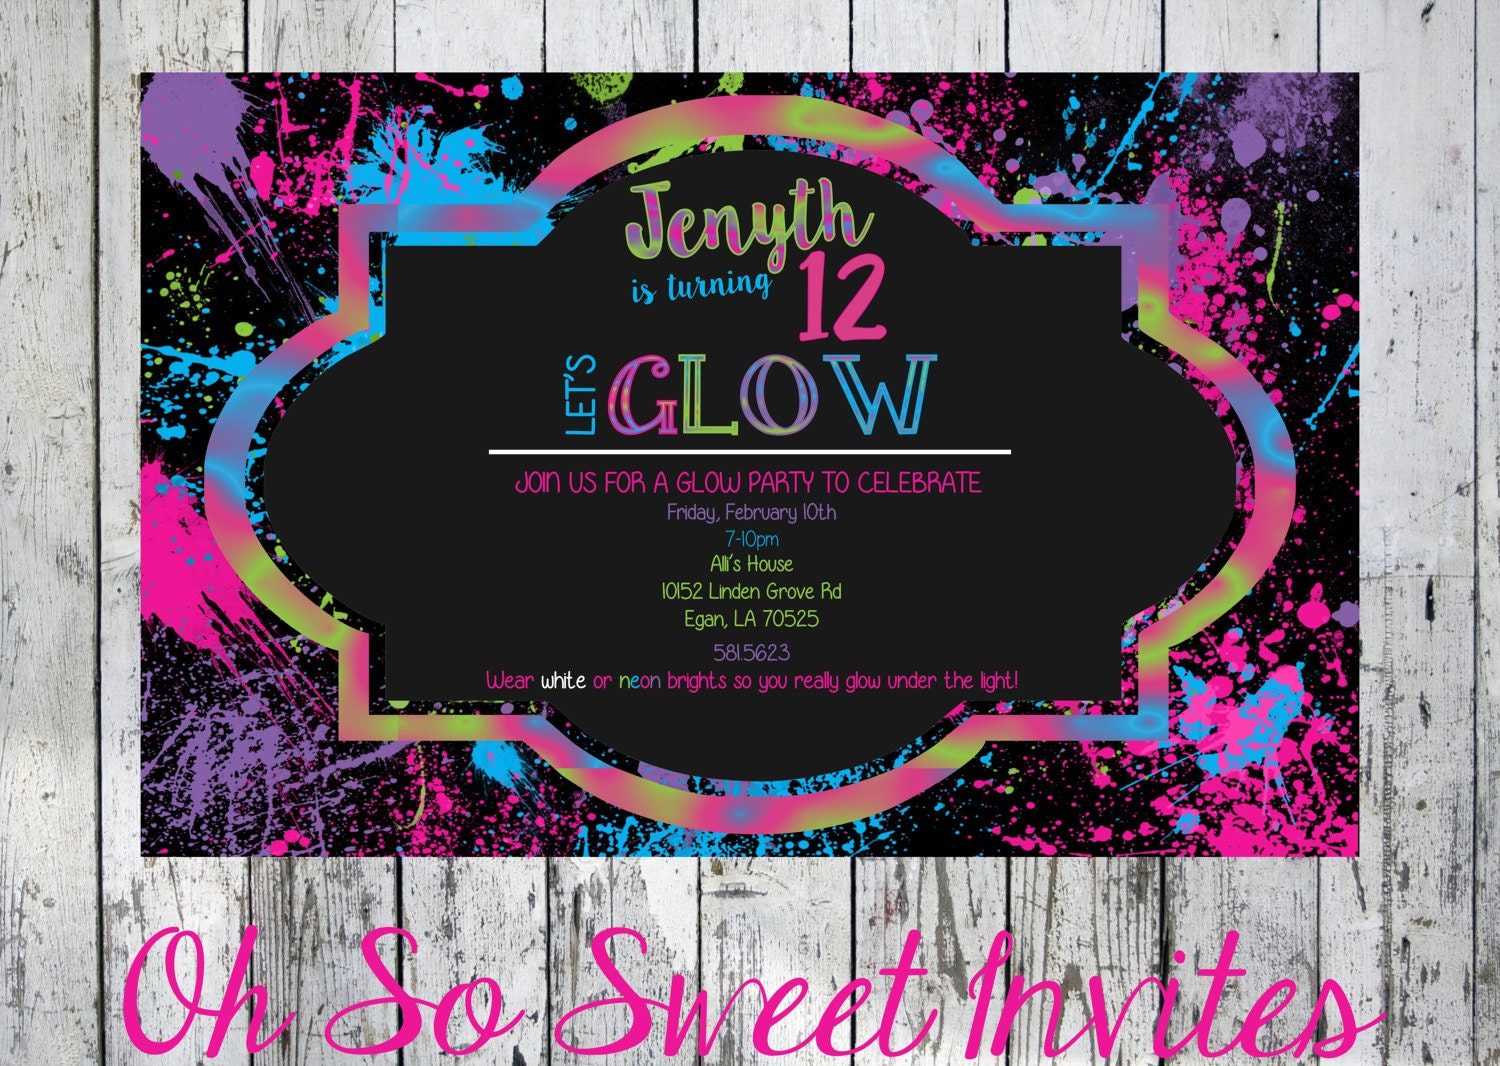 Glow in the dark invite - Glow in the dark party - Glow in the ...